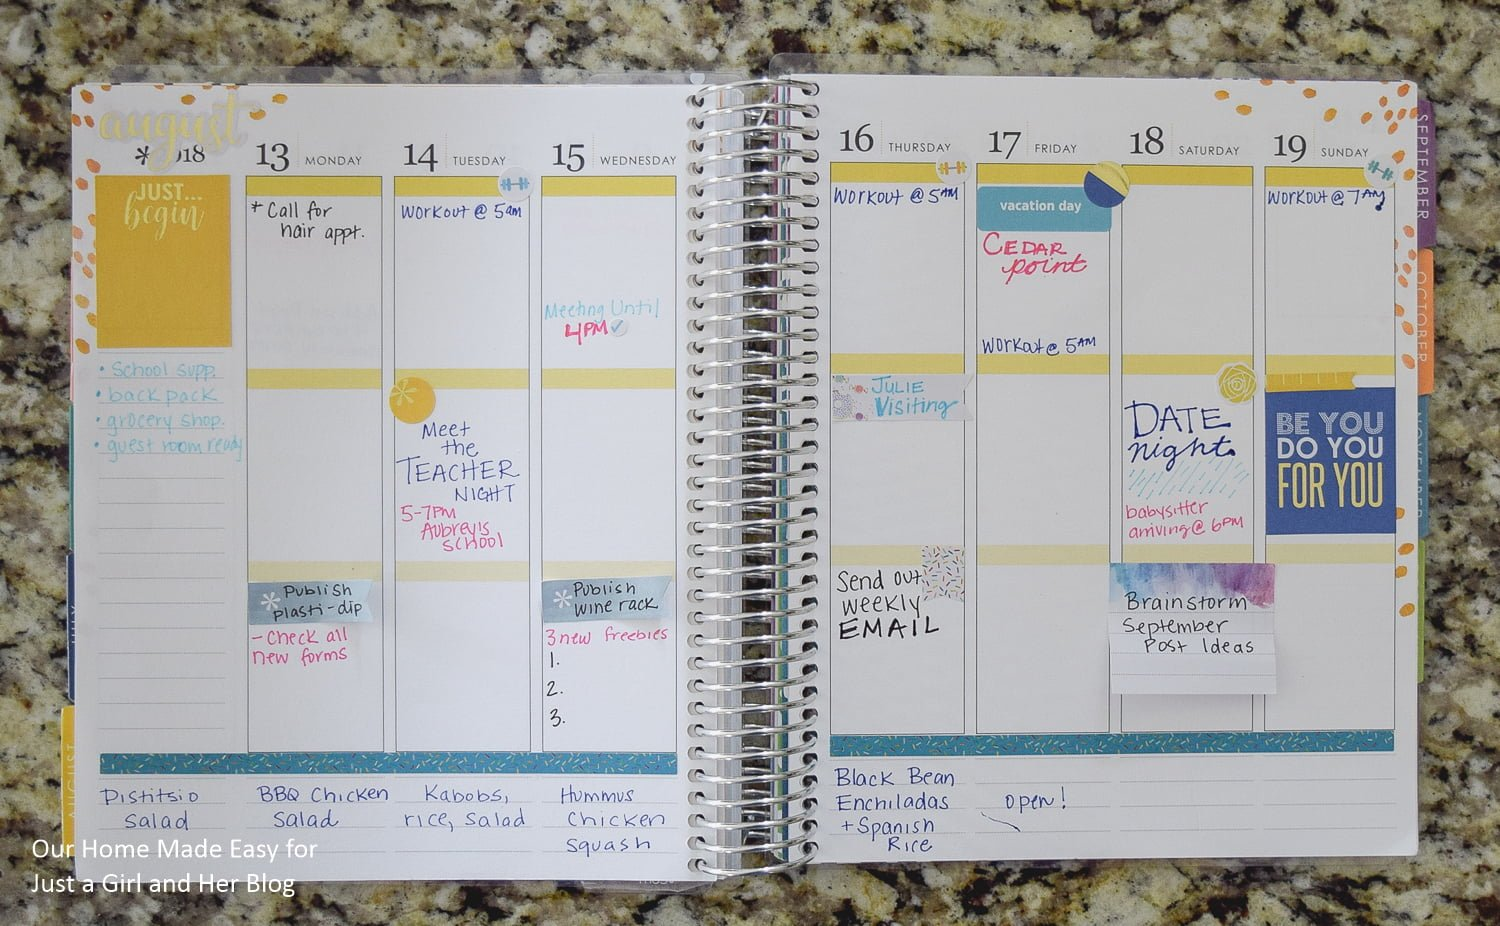 How to Use a Planner for a Full Time Working Mom